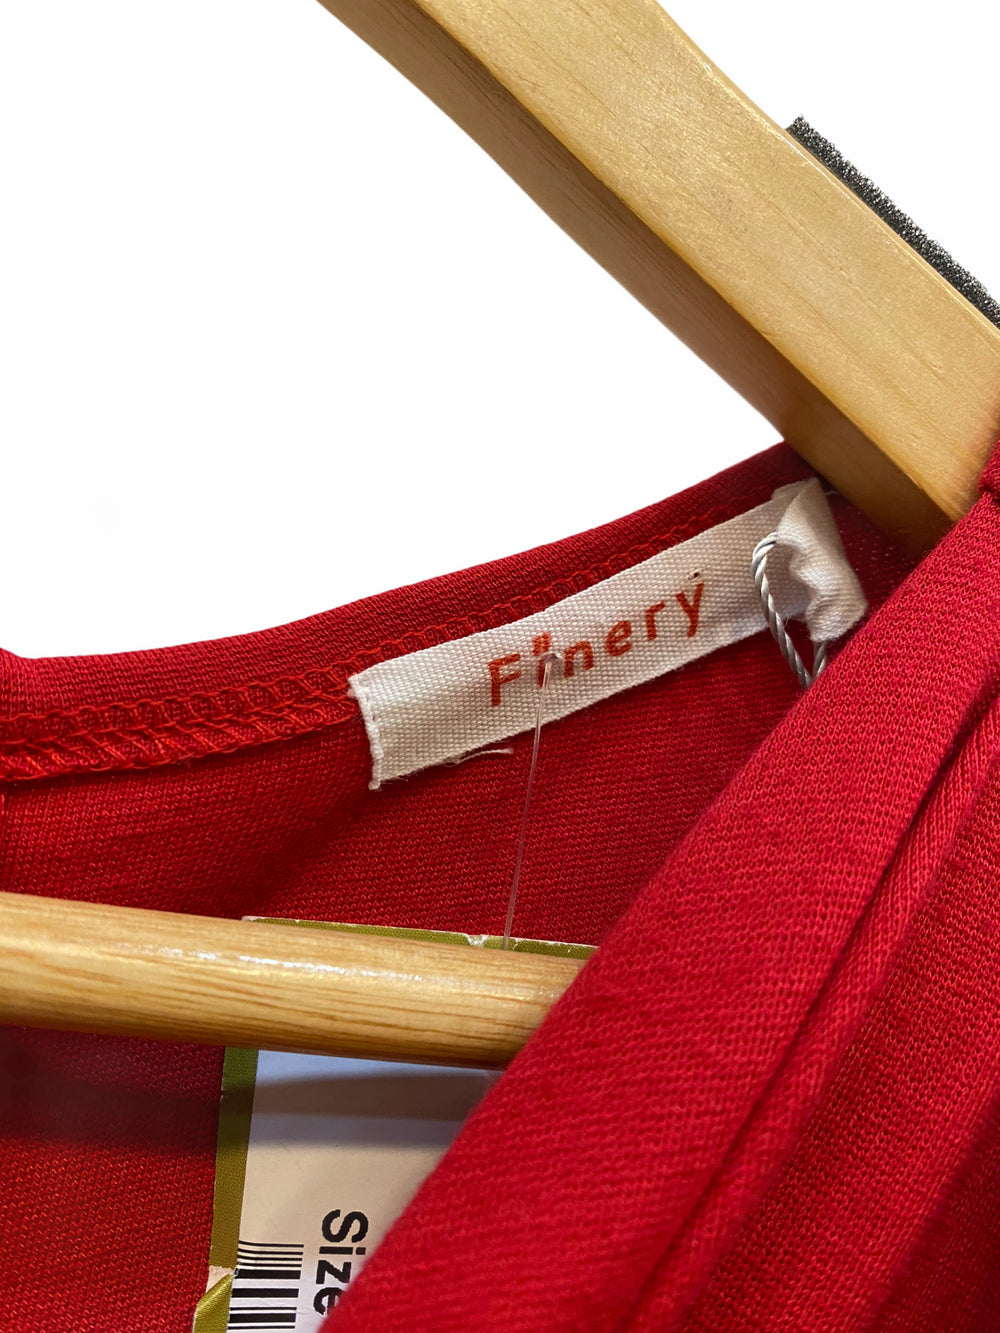 Finery London Red Dress - Size UK 16